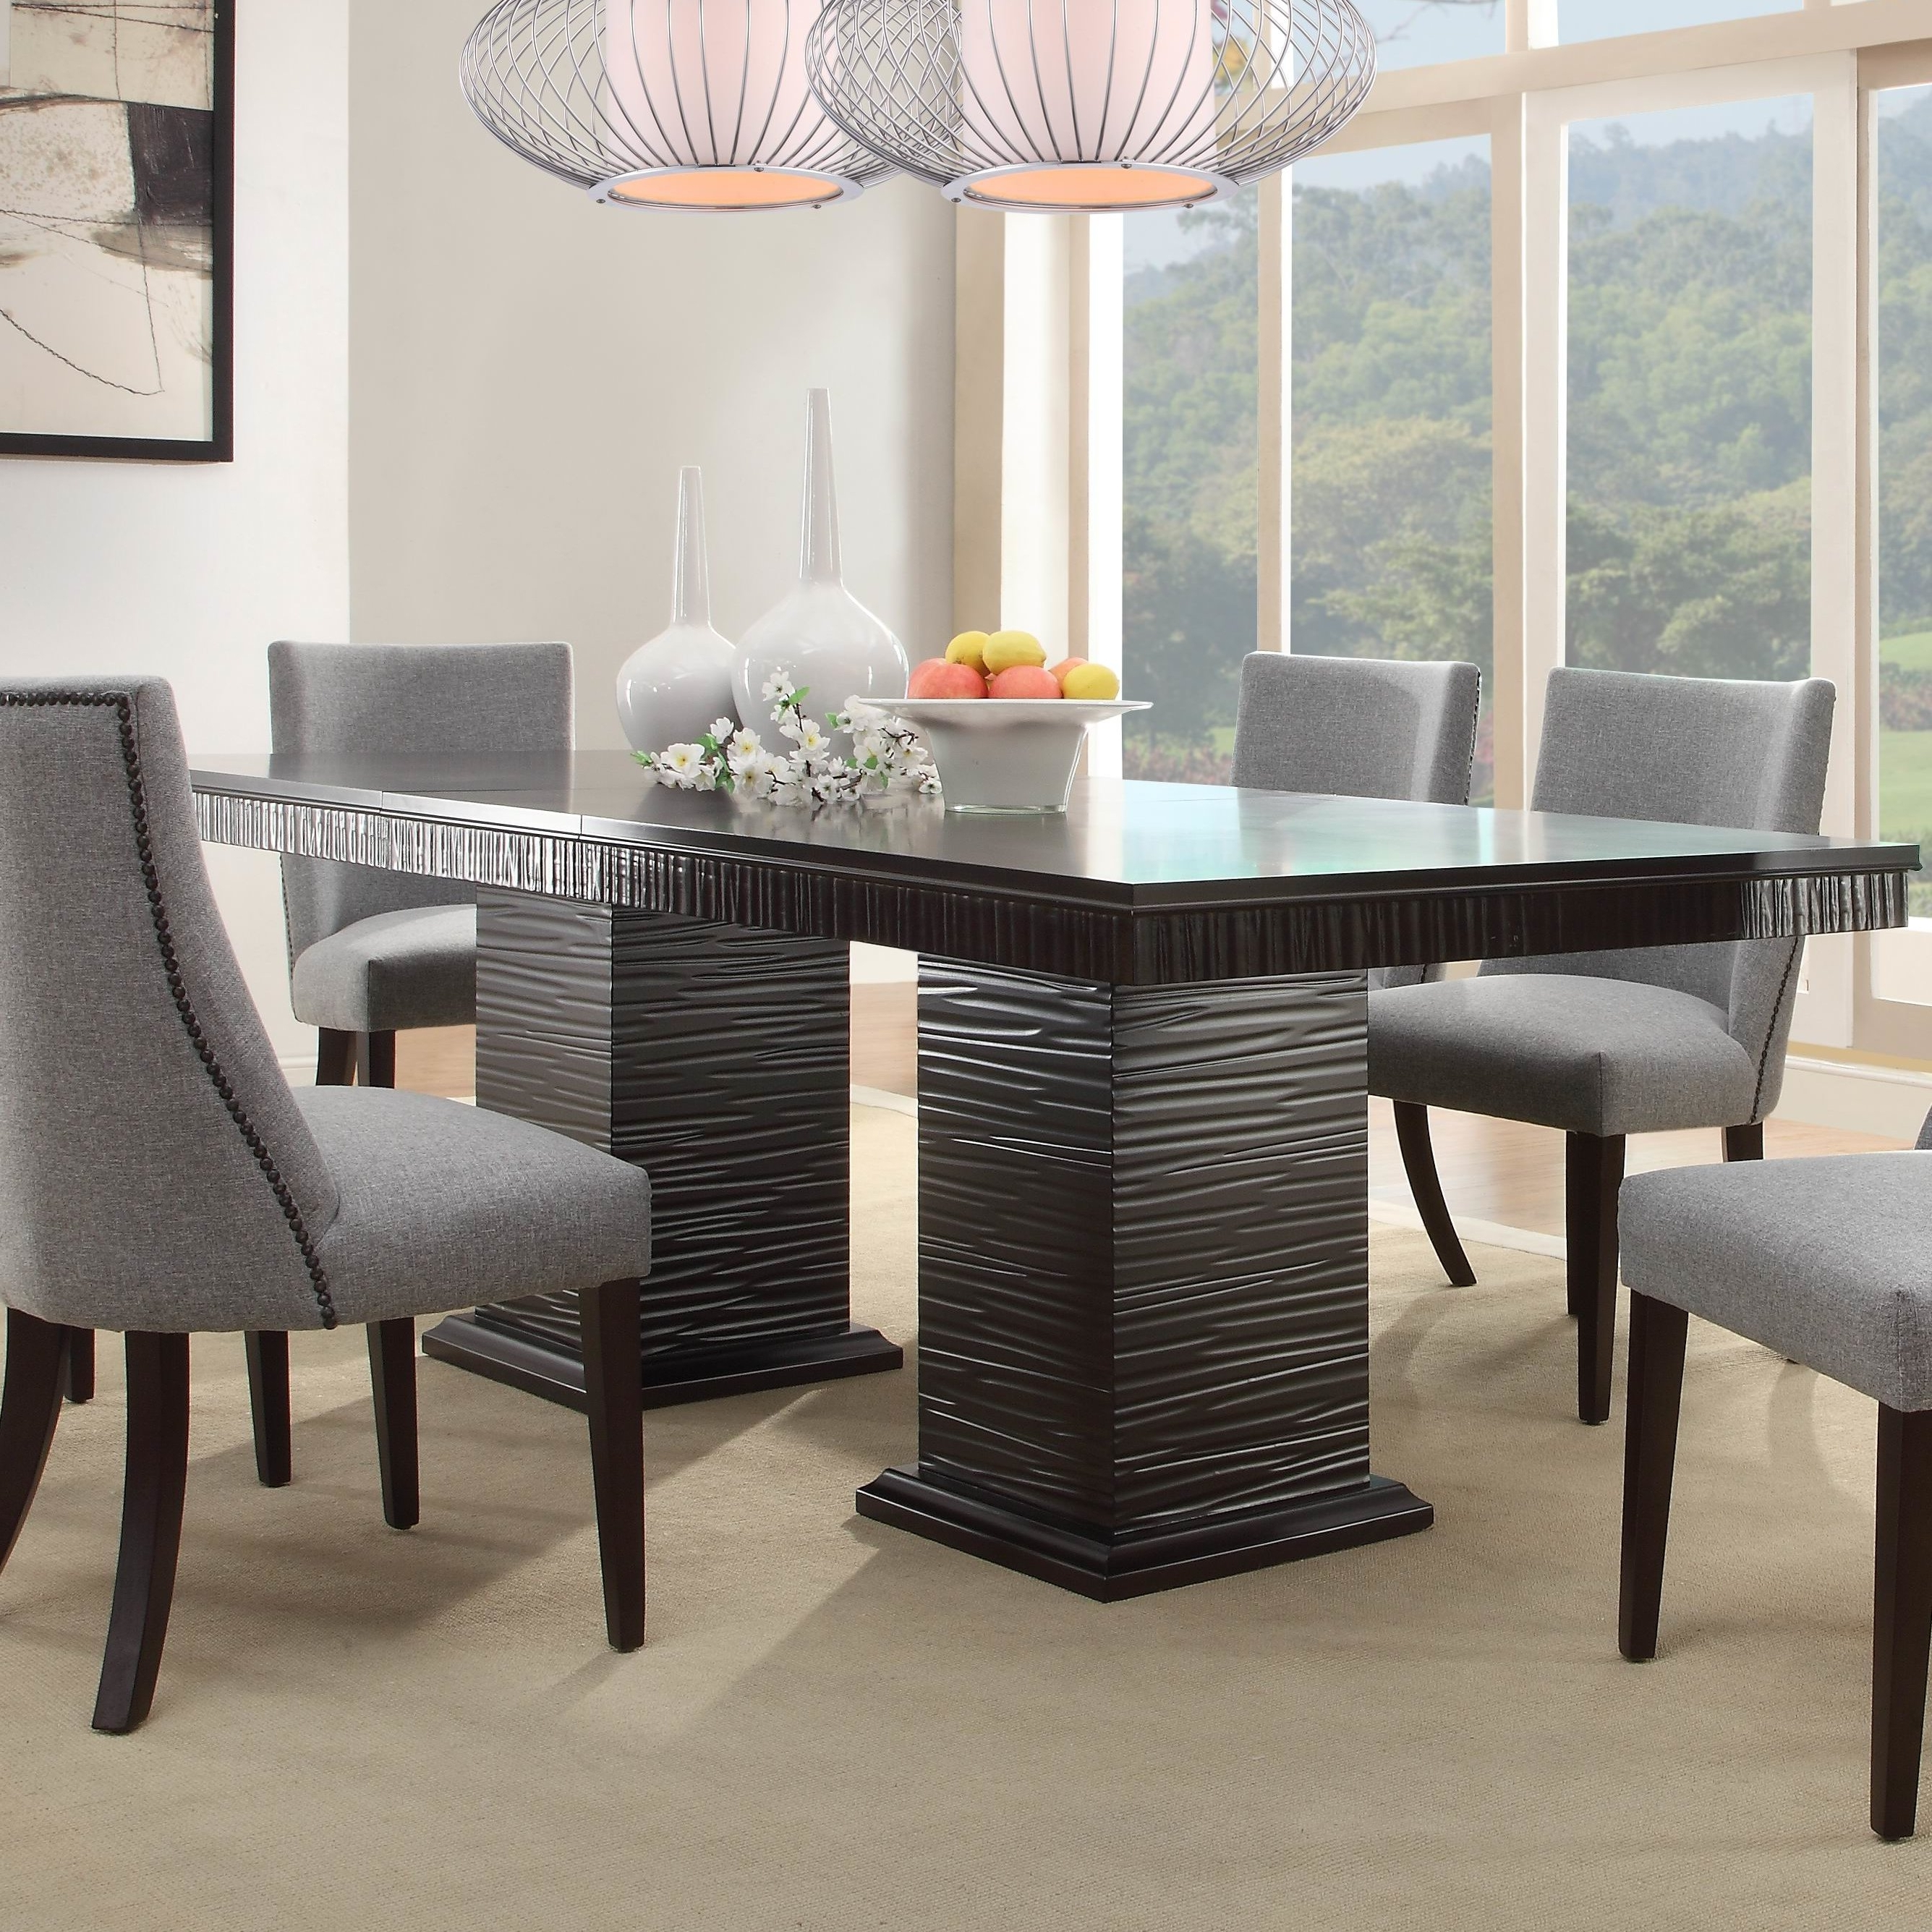 Cheap Extendable Dining Tables With Regard To Most Popular Cadogan Extendable Dining Table & Reviews (View 25 of 25)